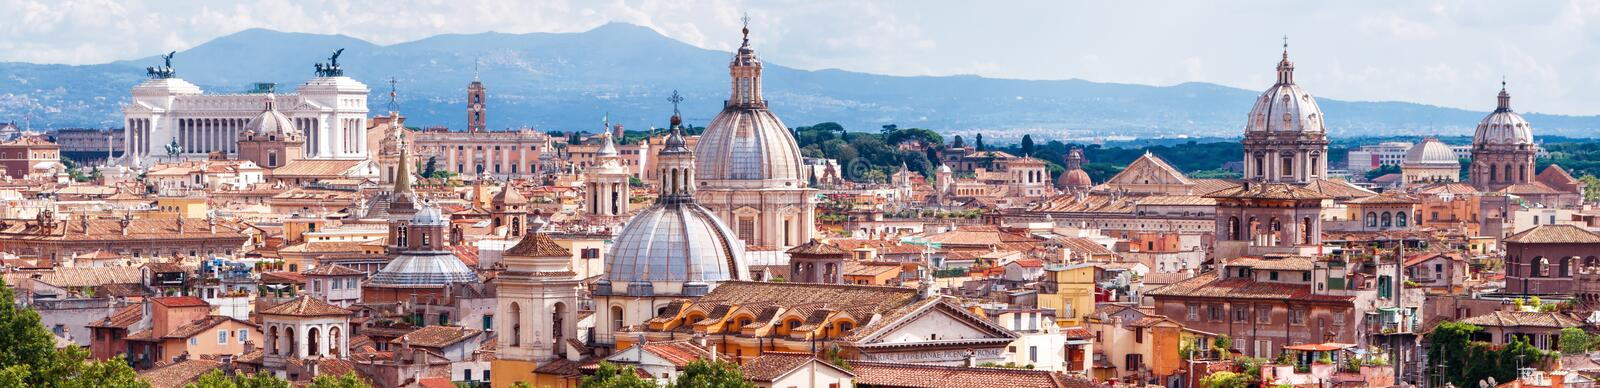 Aerial panoramic view of Rome, Italy royalty free stock photo